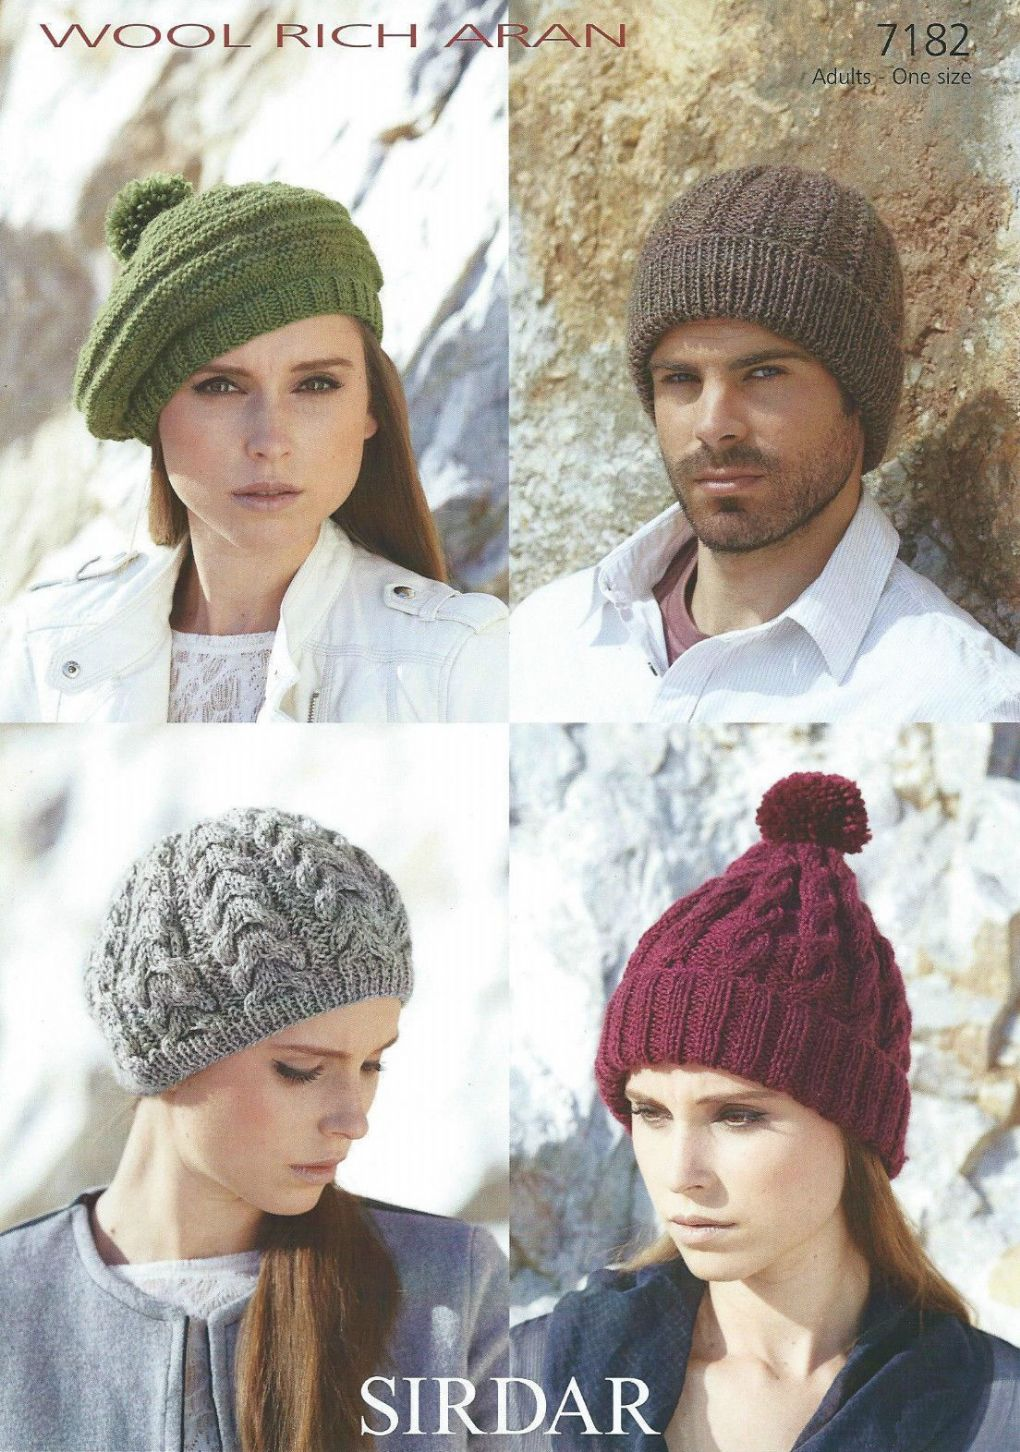 e7fb1709e 7182-sirdar-wool-rich-aran-adult-beret-hat-knitting-pattern -one-size-61221-p.jpg